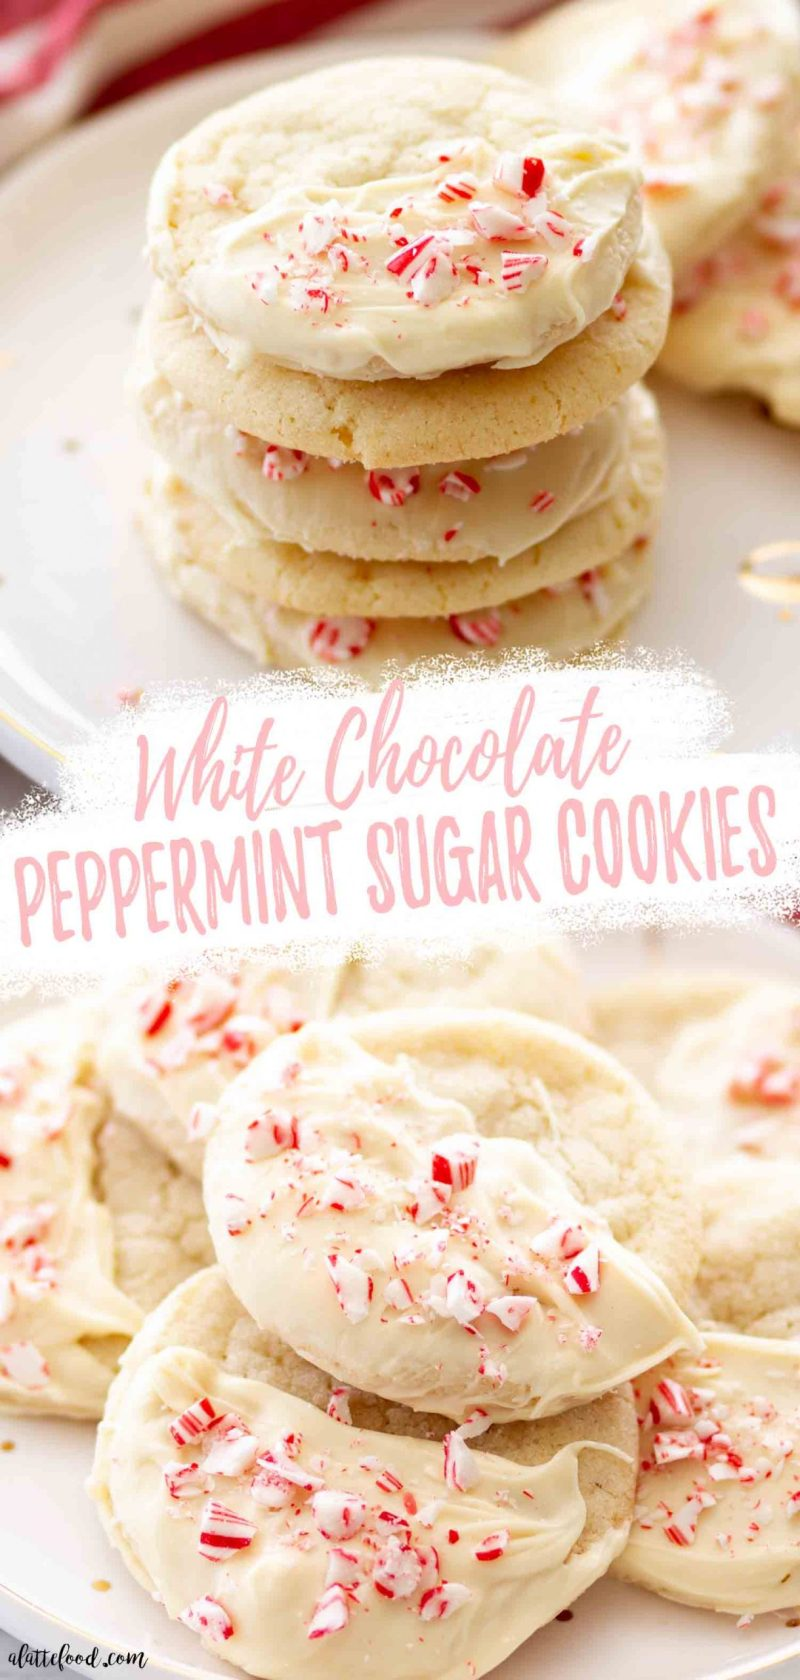 dipped white chocolate peppermint sugar cookies on a white plate photo collage